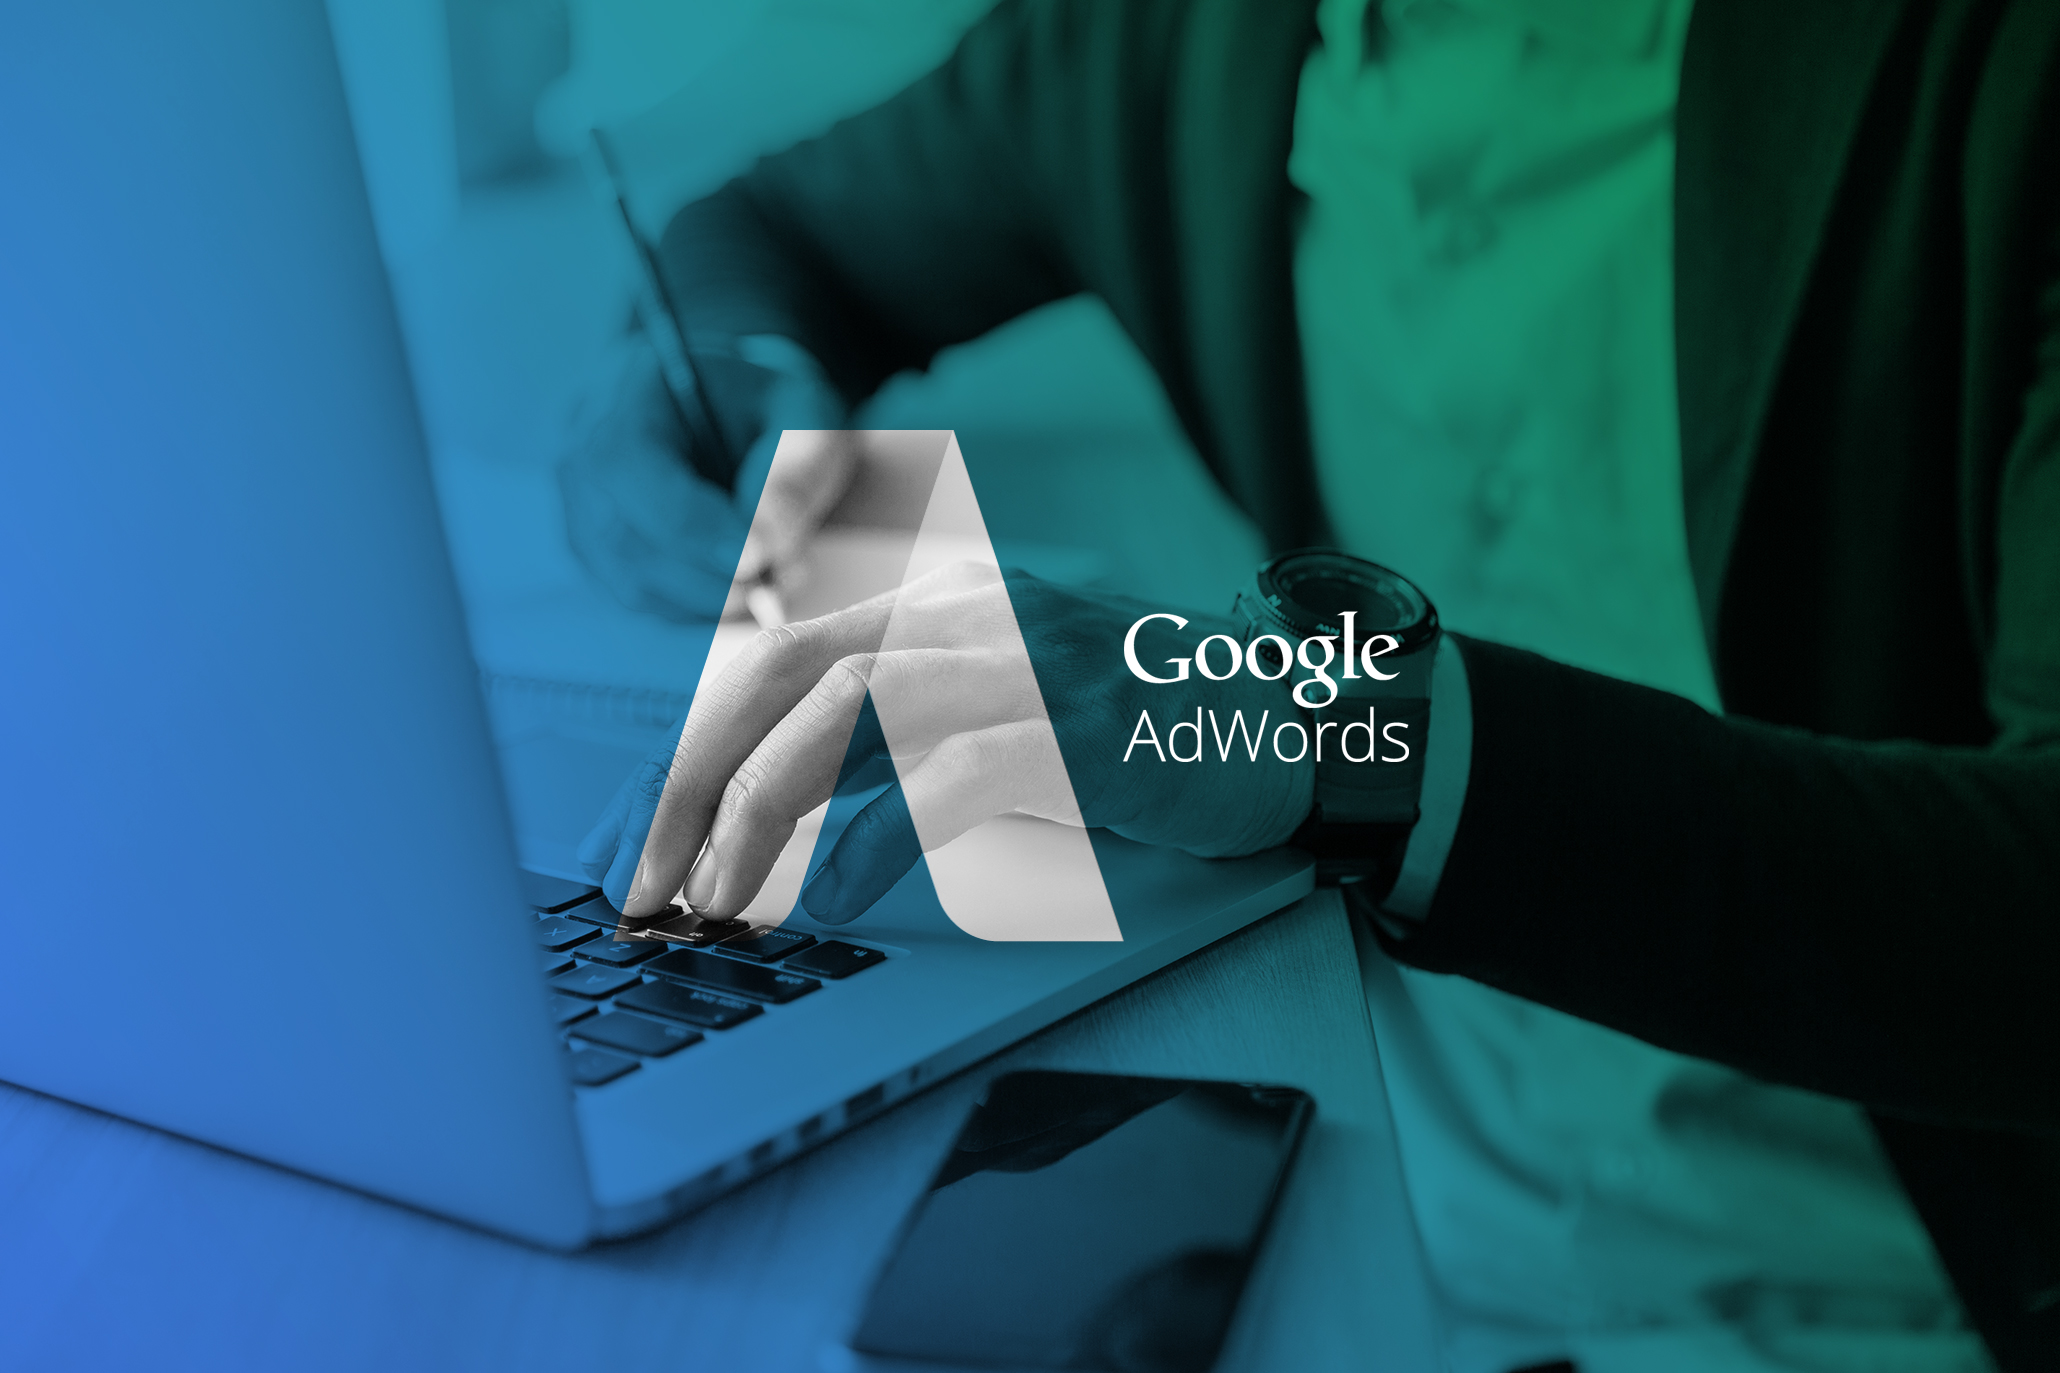 From Startups to Managers: A Beginner's Guide to Google AdWords